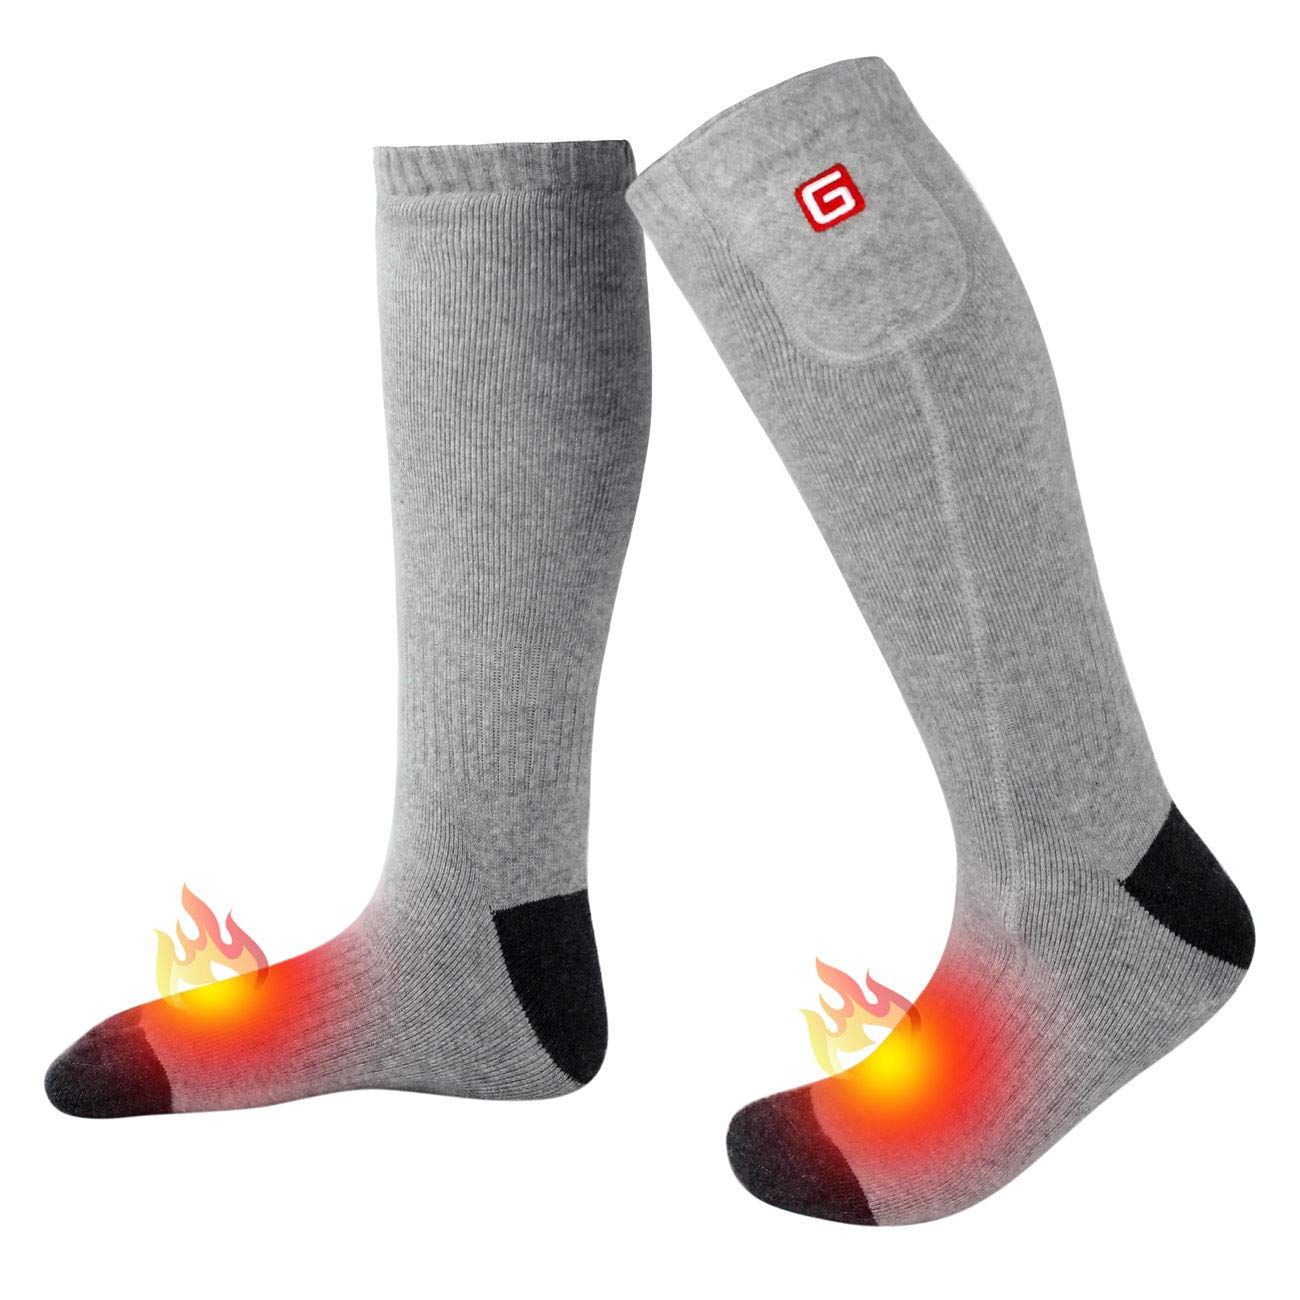 Electric Heated Socks for Men Thermal Socks Rechargeable Battery Foot Warmers Winter Ideal Presents for Men Women Perfect for Indoor Outdoor Sport Fishing/Hiking/Sleeping (Gray-Large) by MMlove